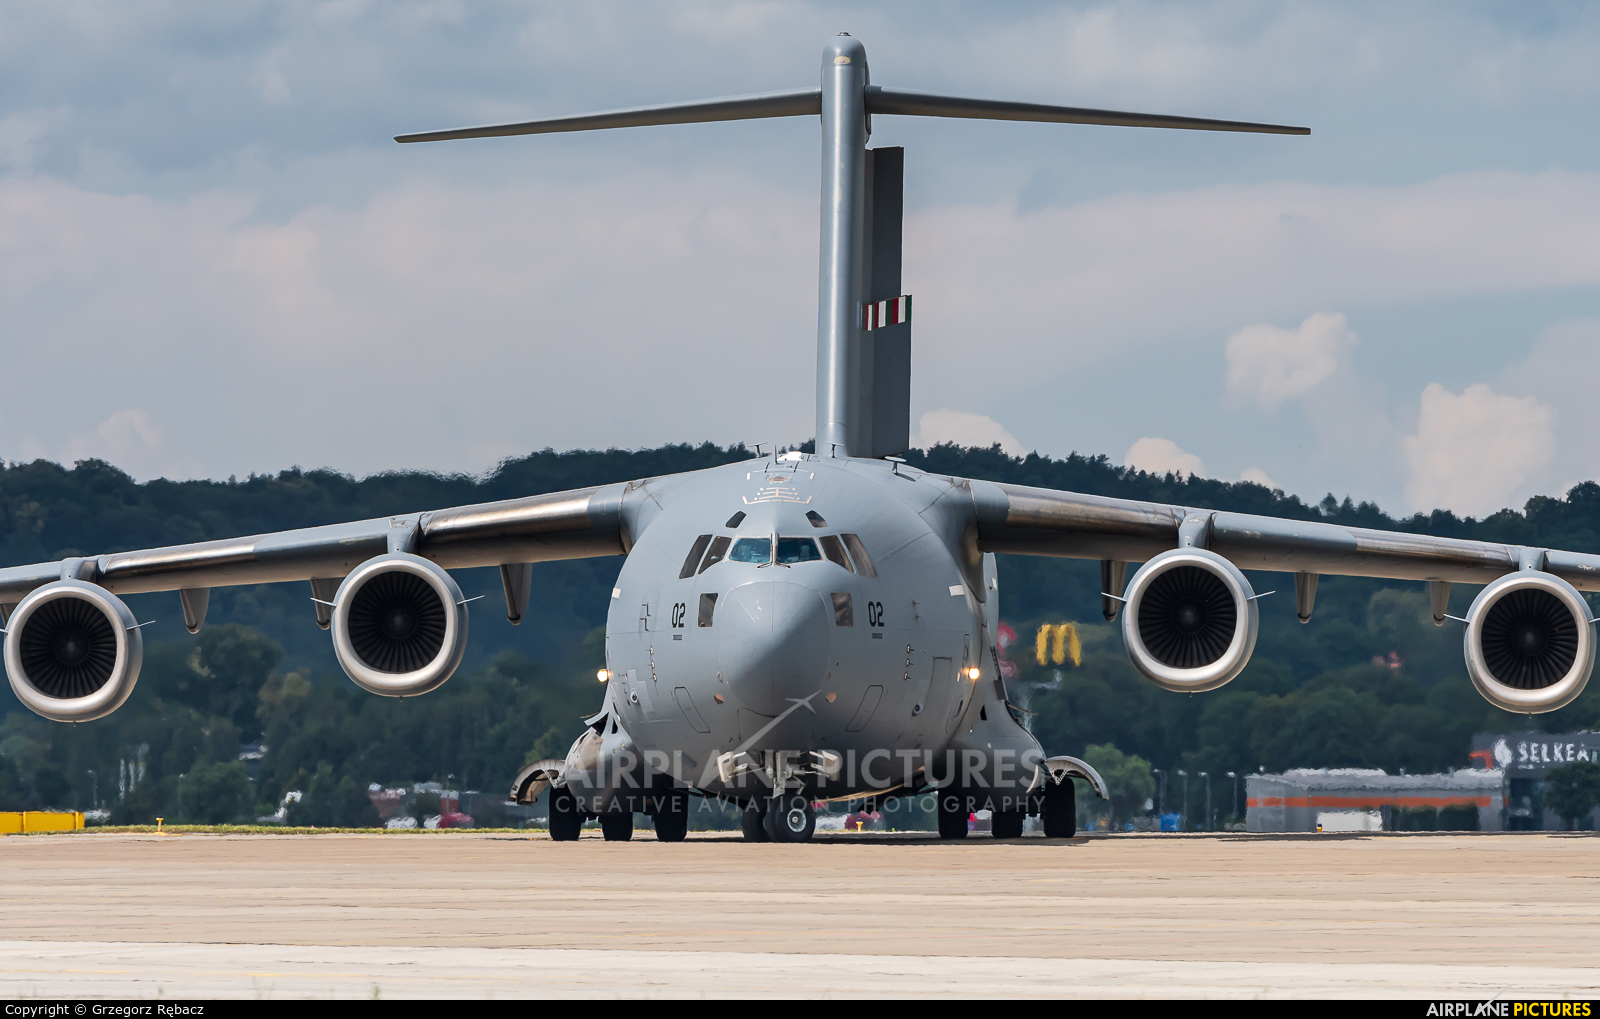 Strategic Airlift Capability NATO 08-0002 aircraft at Kraków - John Paul II Intl